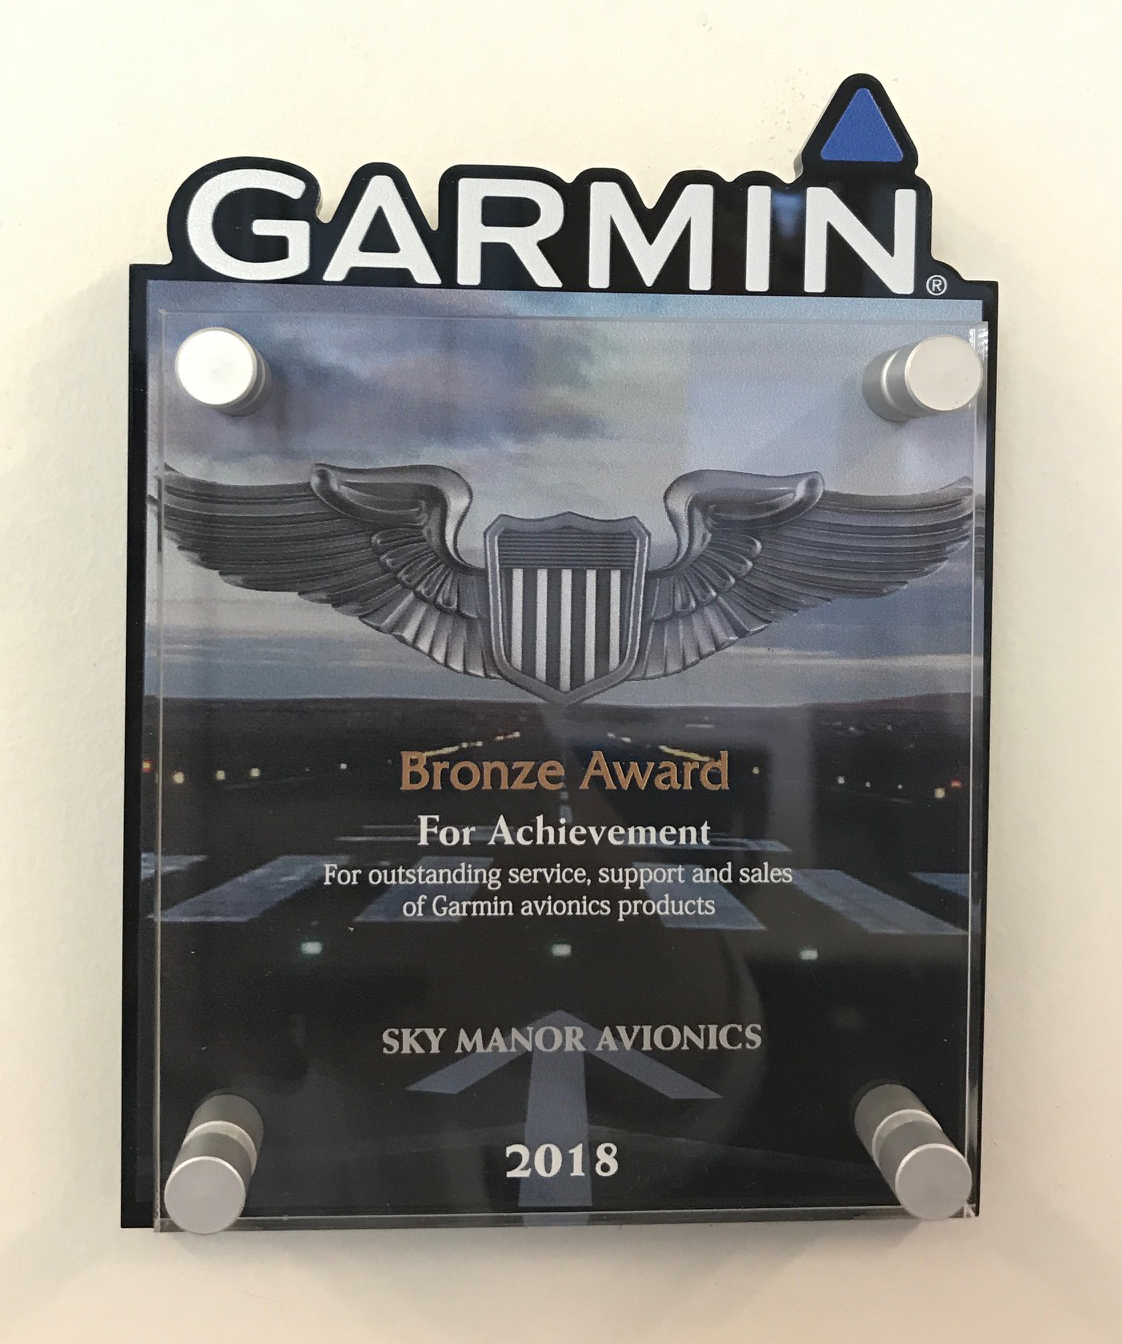 Sky Manor Avionics Garmin Bronze Award